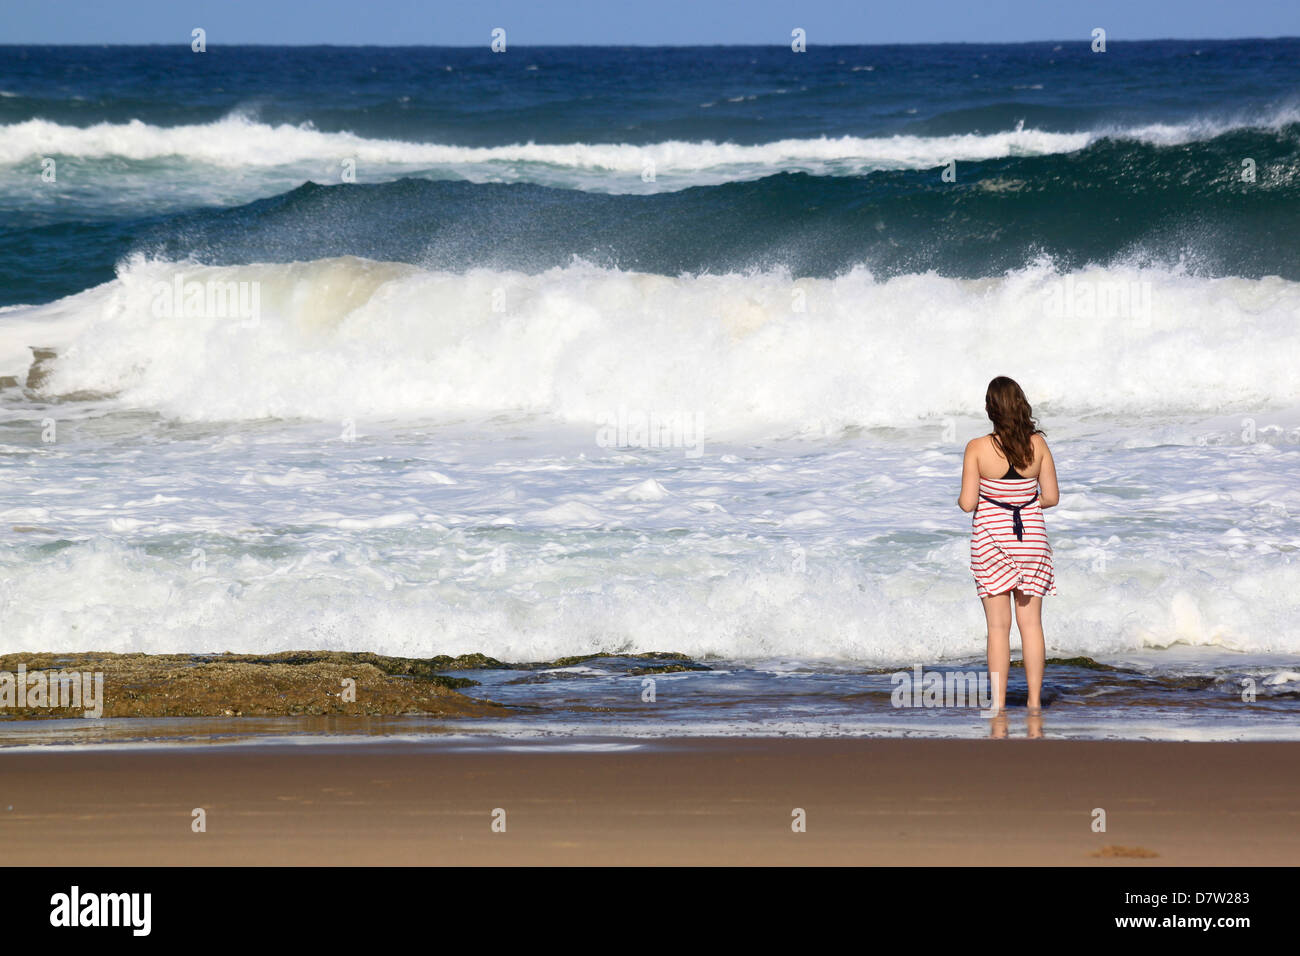 A young woman stands by crashing waves at the beach, St. Lucia Wetlands, Kwa-Zulu Natal, South Africa - Stock Image